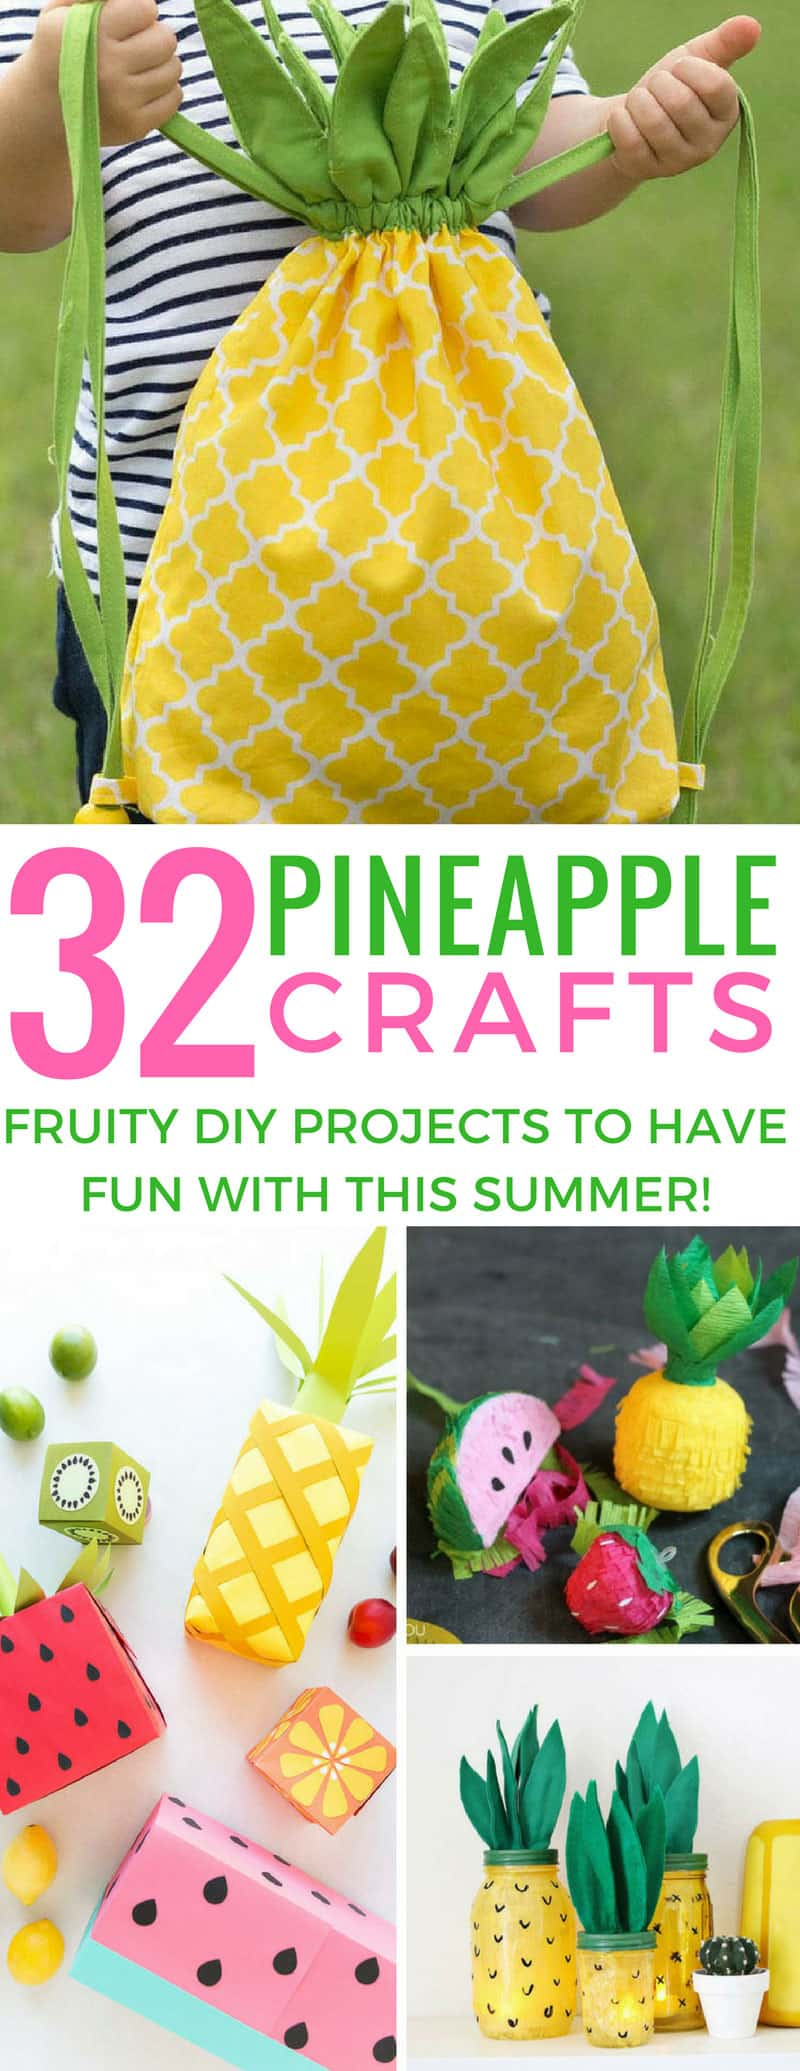 You can't beat a DIY pineapple craft to put you in a sunny mood! Love these ideas! Thanks for sharing!